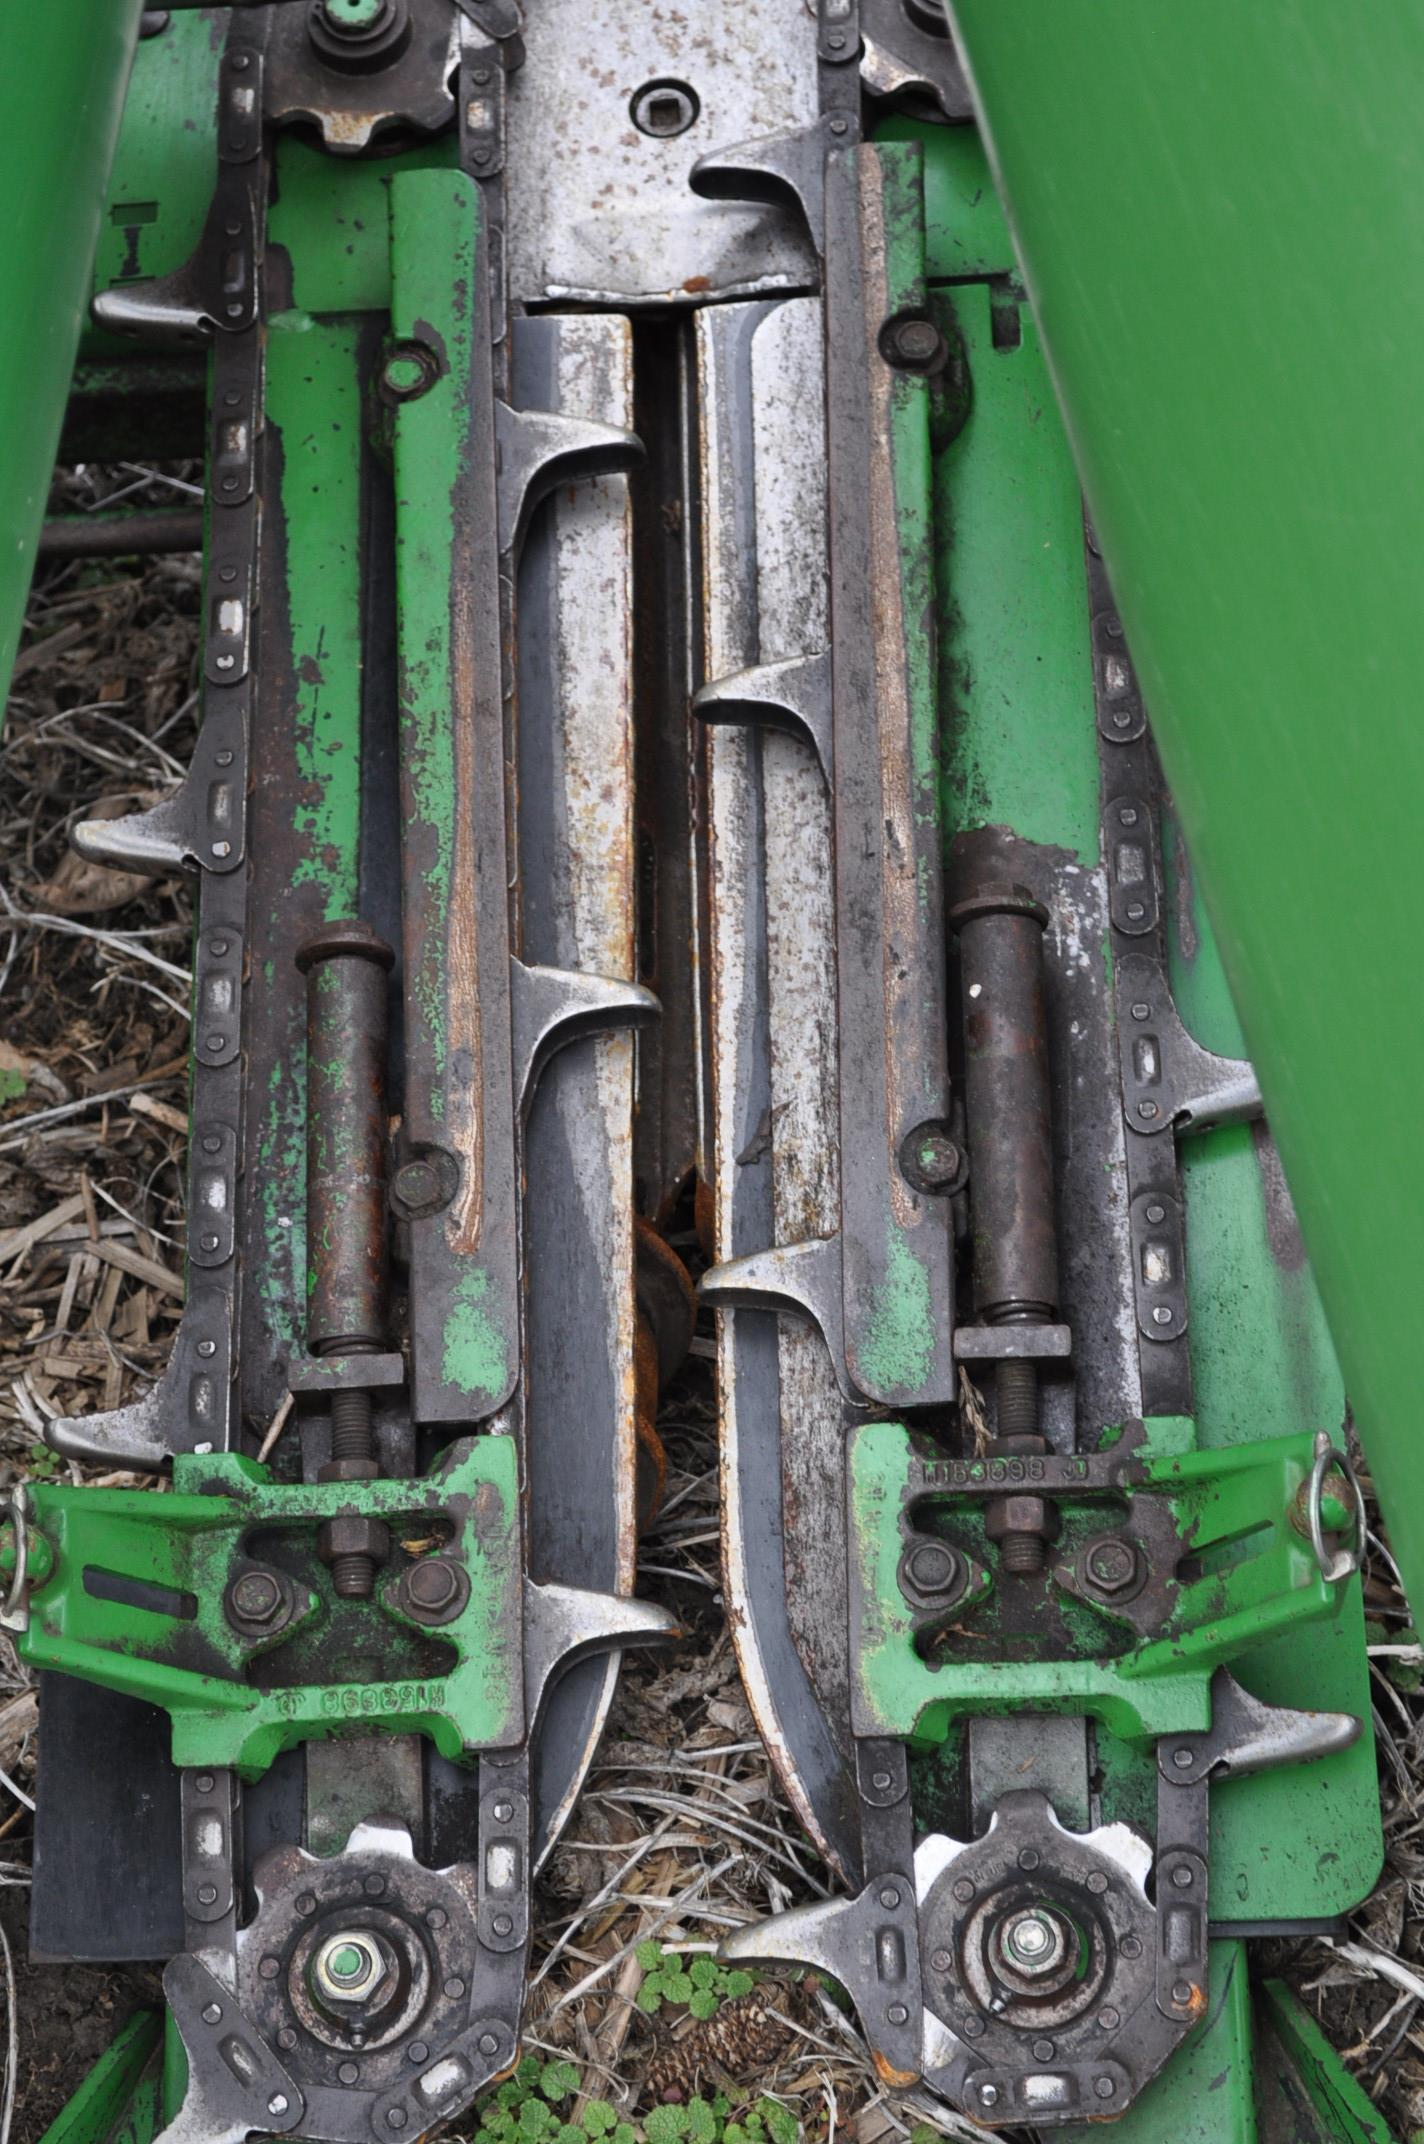 John Deere 693 corn head, poly, fluted rolls, hyd deck plates, pto shafts, SN 710815 - Image 7 of 14